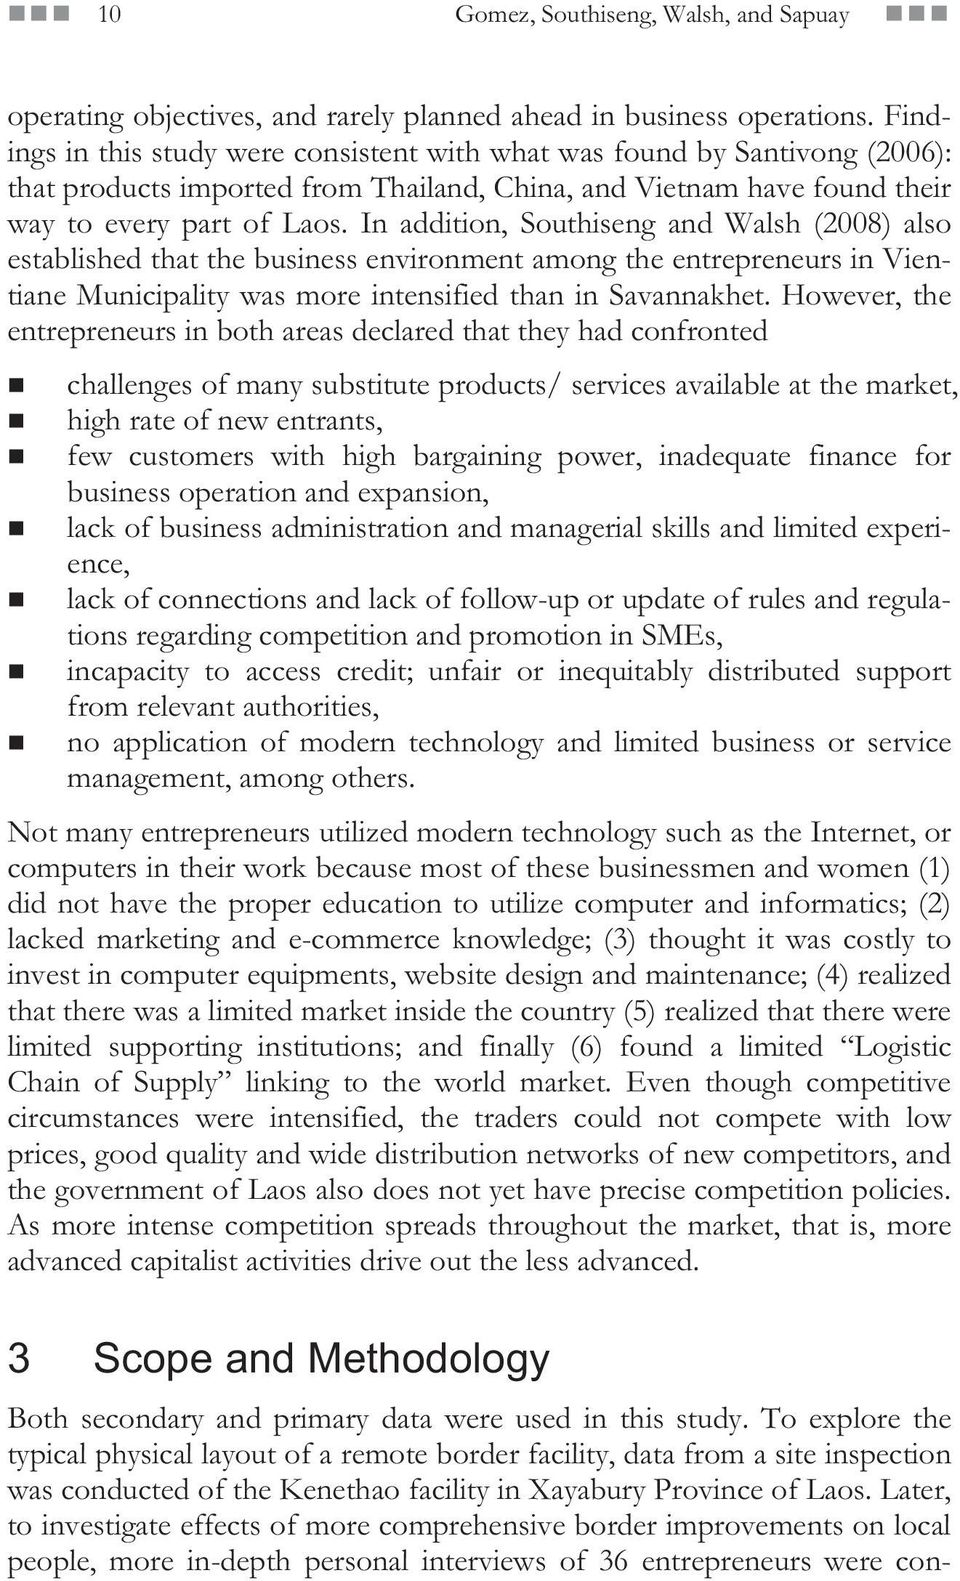 In addition, Southiseng and Walsh (2008) also established that the business environment among the entrepreneurs in Vientiane Municipality was more intensified than in Savannakhet.